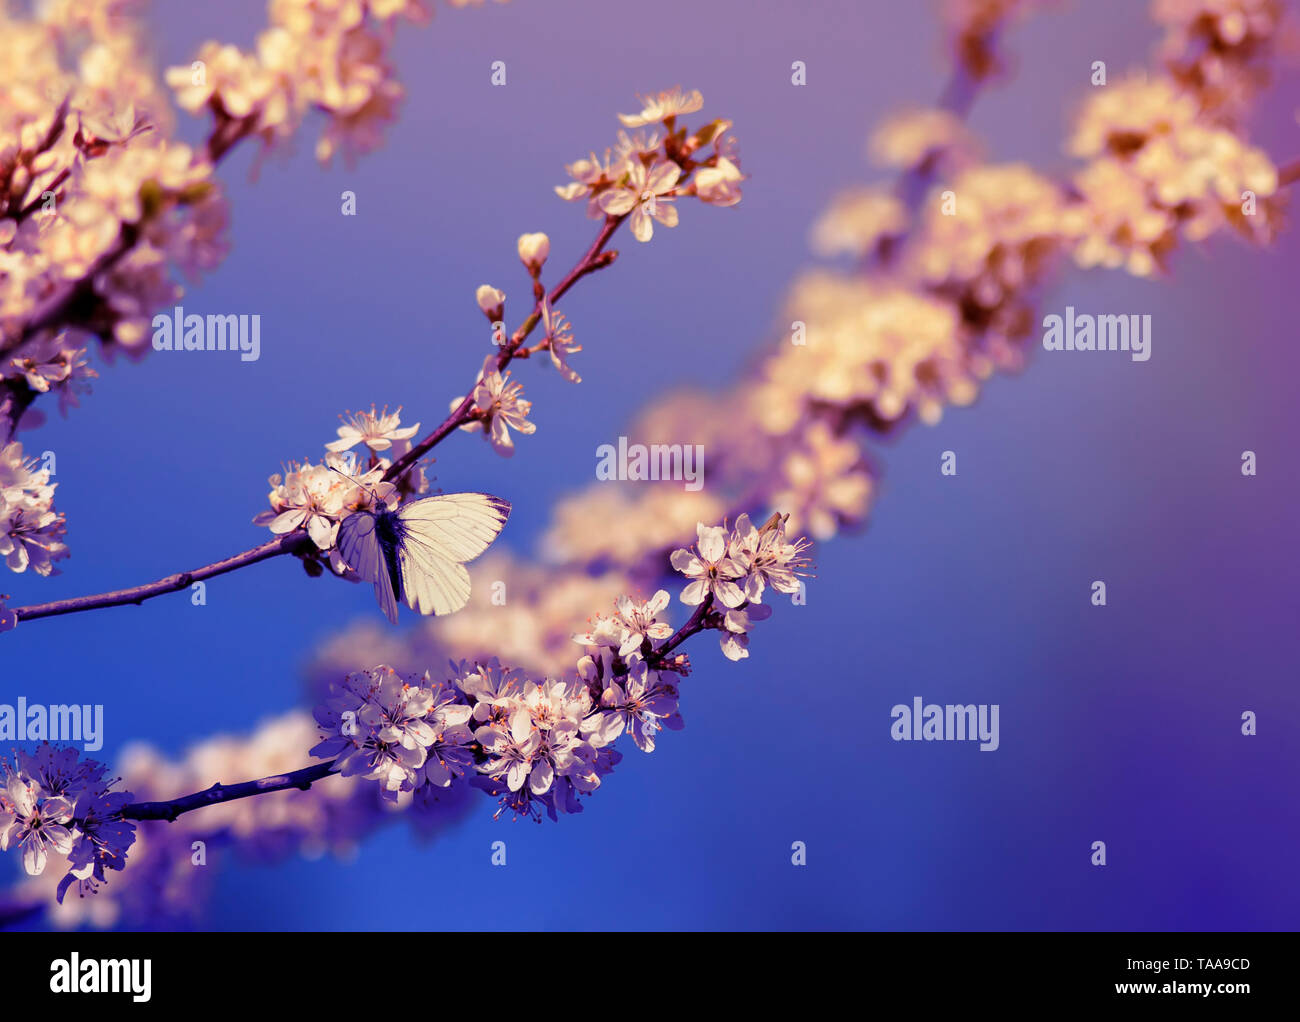 white small a butterfly sits on branches with fluffy fragrant flowers and buds of a bush blossoming in May warm sunshine th garden lilac colors dawn - Stock Image